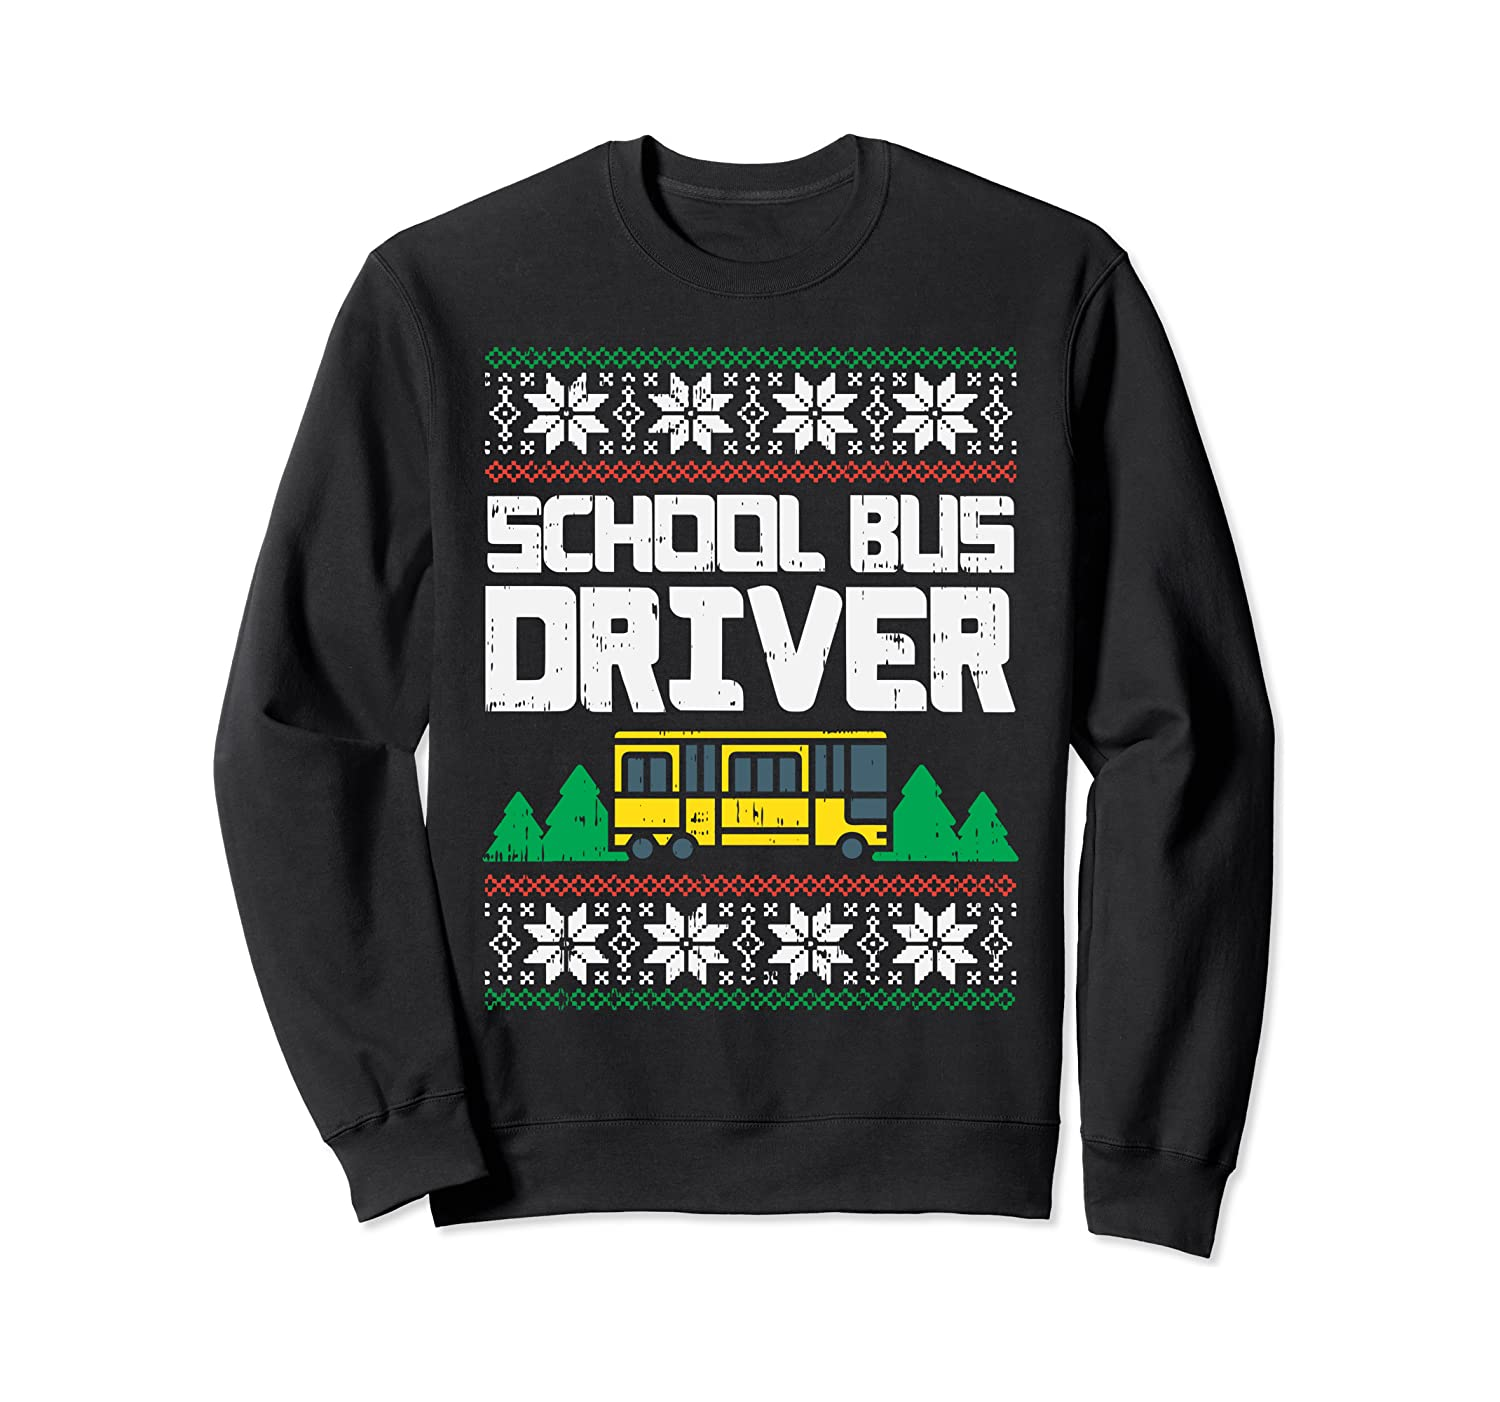 School Bus Driver Ugly Christmas Sweater Funny Xmas Gift Sweatshirt